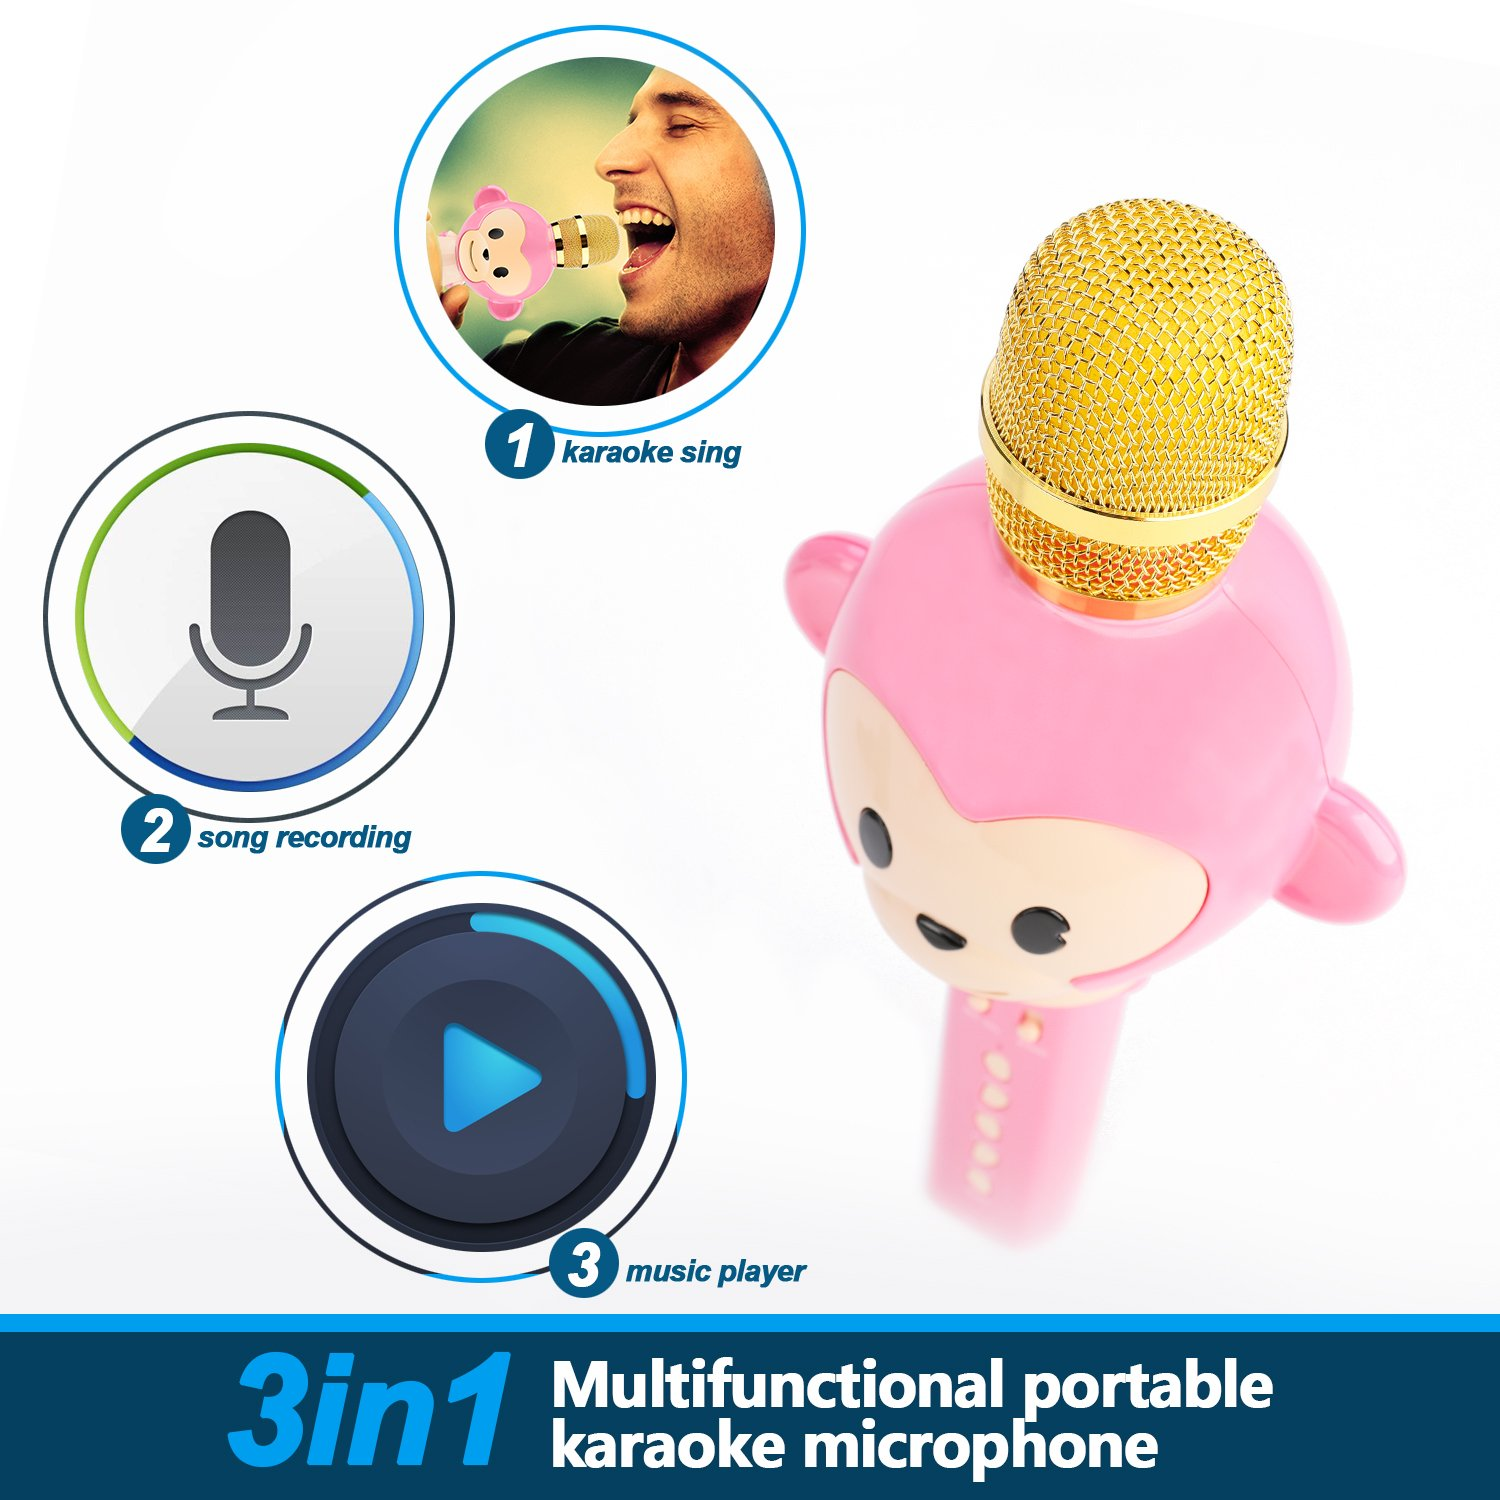 Microphone for Kids Children Karaoke Microphone Bluetooth Wireless Microphone Portable Handheld Karaoke Machine Toys Gifts Singing Recording Home KTV Party iPhone Android PC Smartphone (Pink) by Seelin (Image #5)